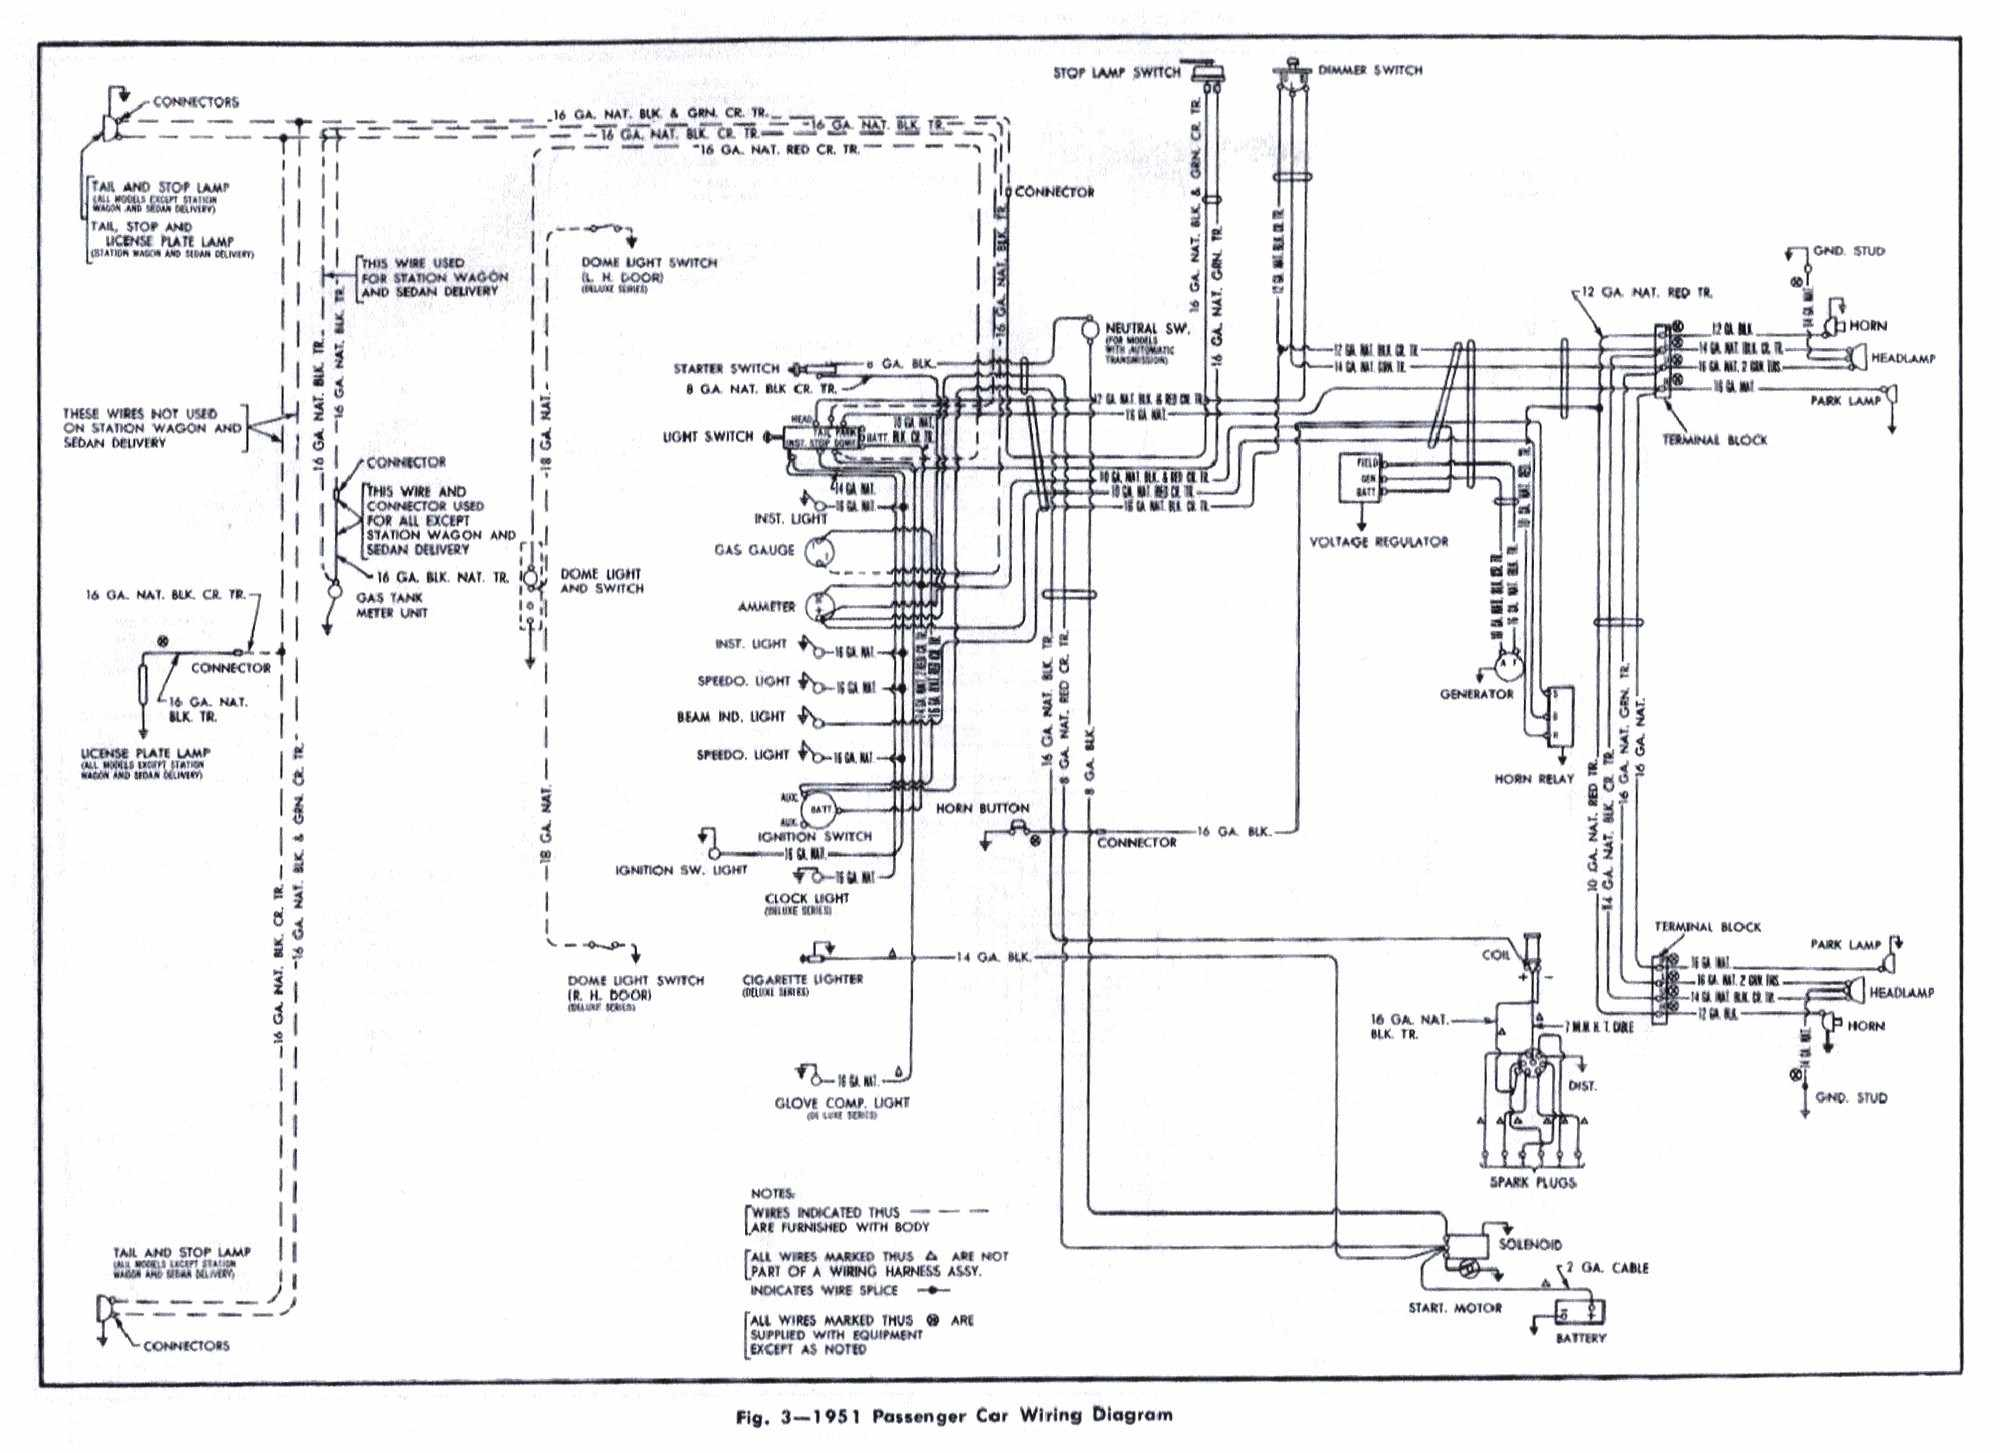 1951 Dodge Wiring Diagram Schematic Third Level 2000 Chrysler Cirrus Diagrams Simca Img